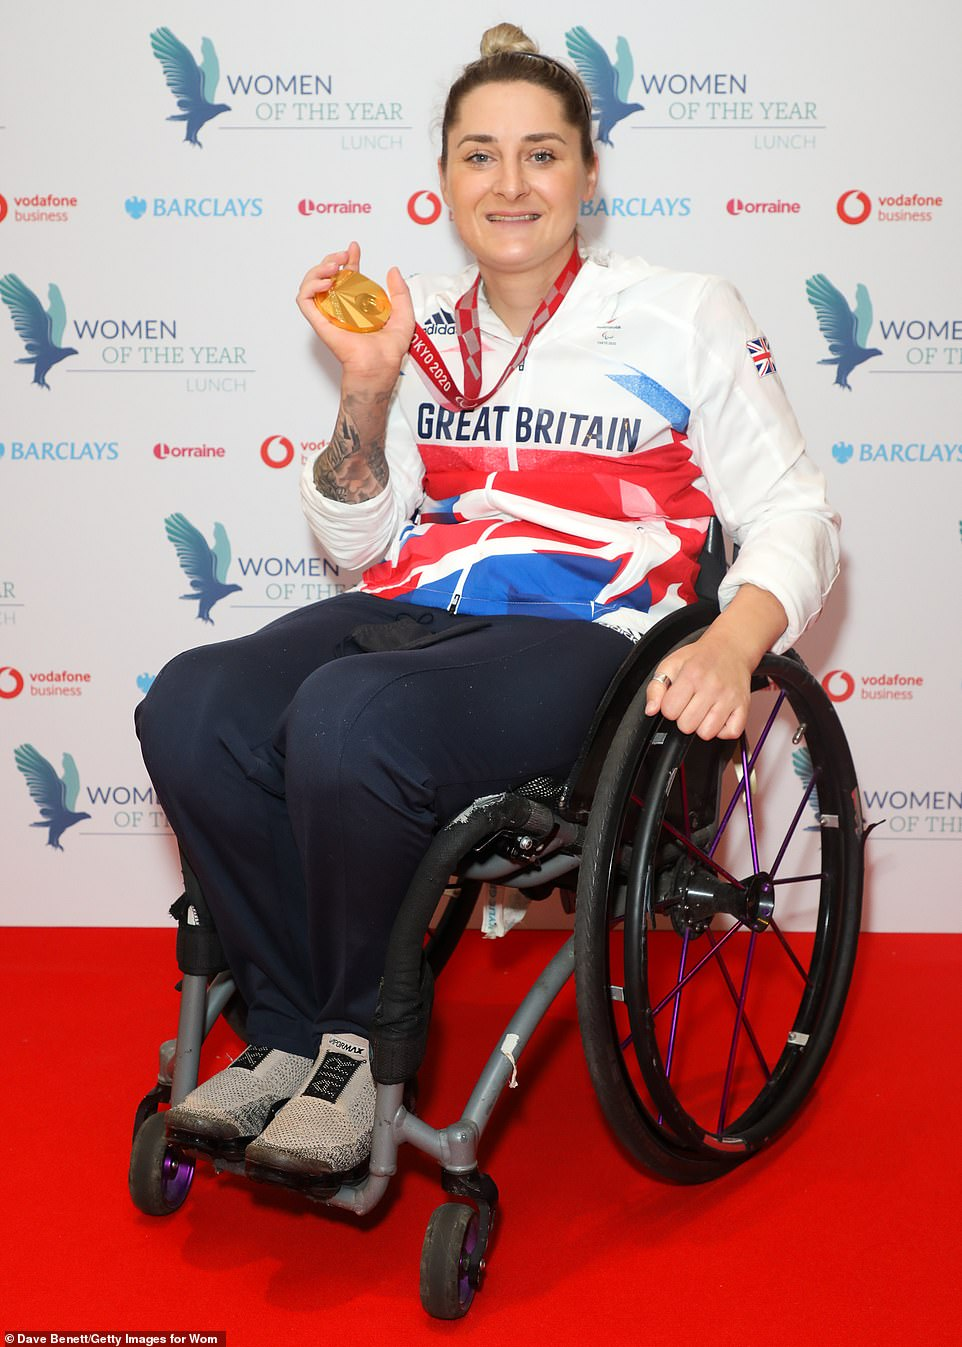 All mine: British para-athlete Kylie Grimes poses with her award following Monday's ceremony